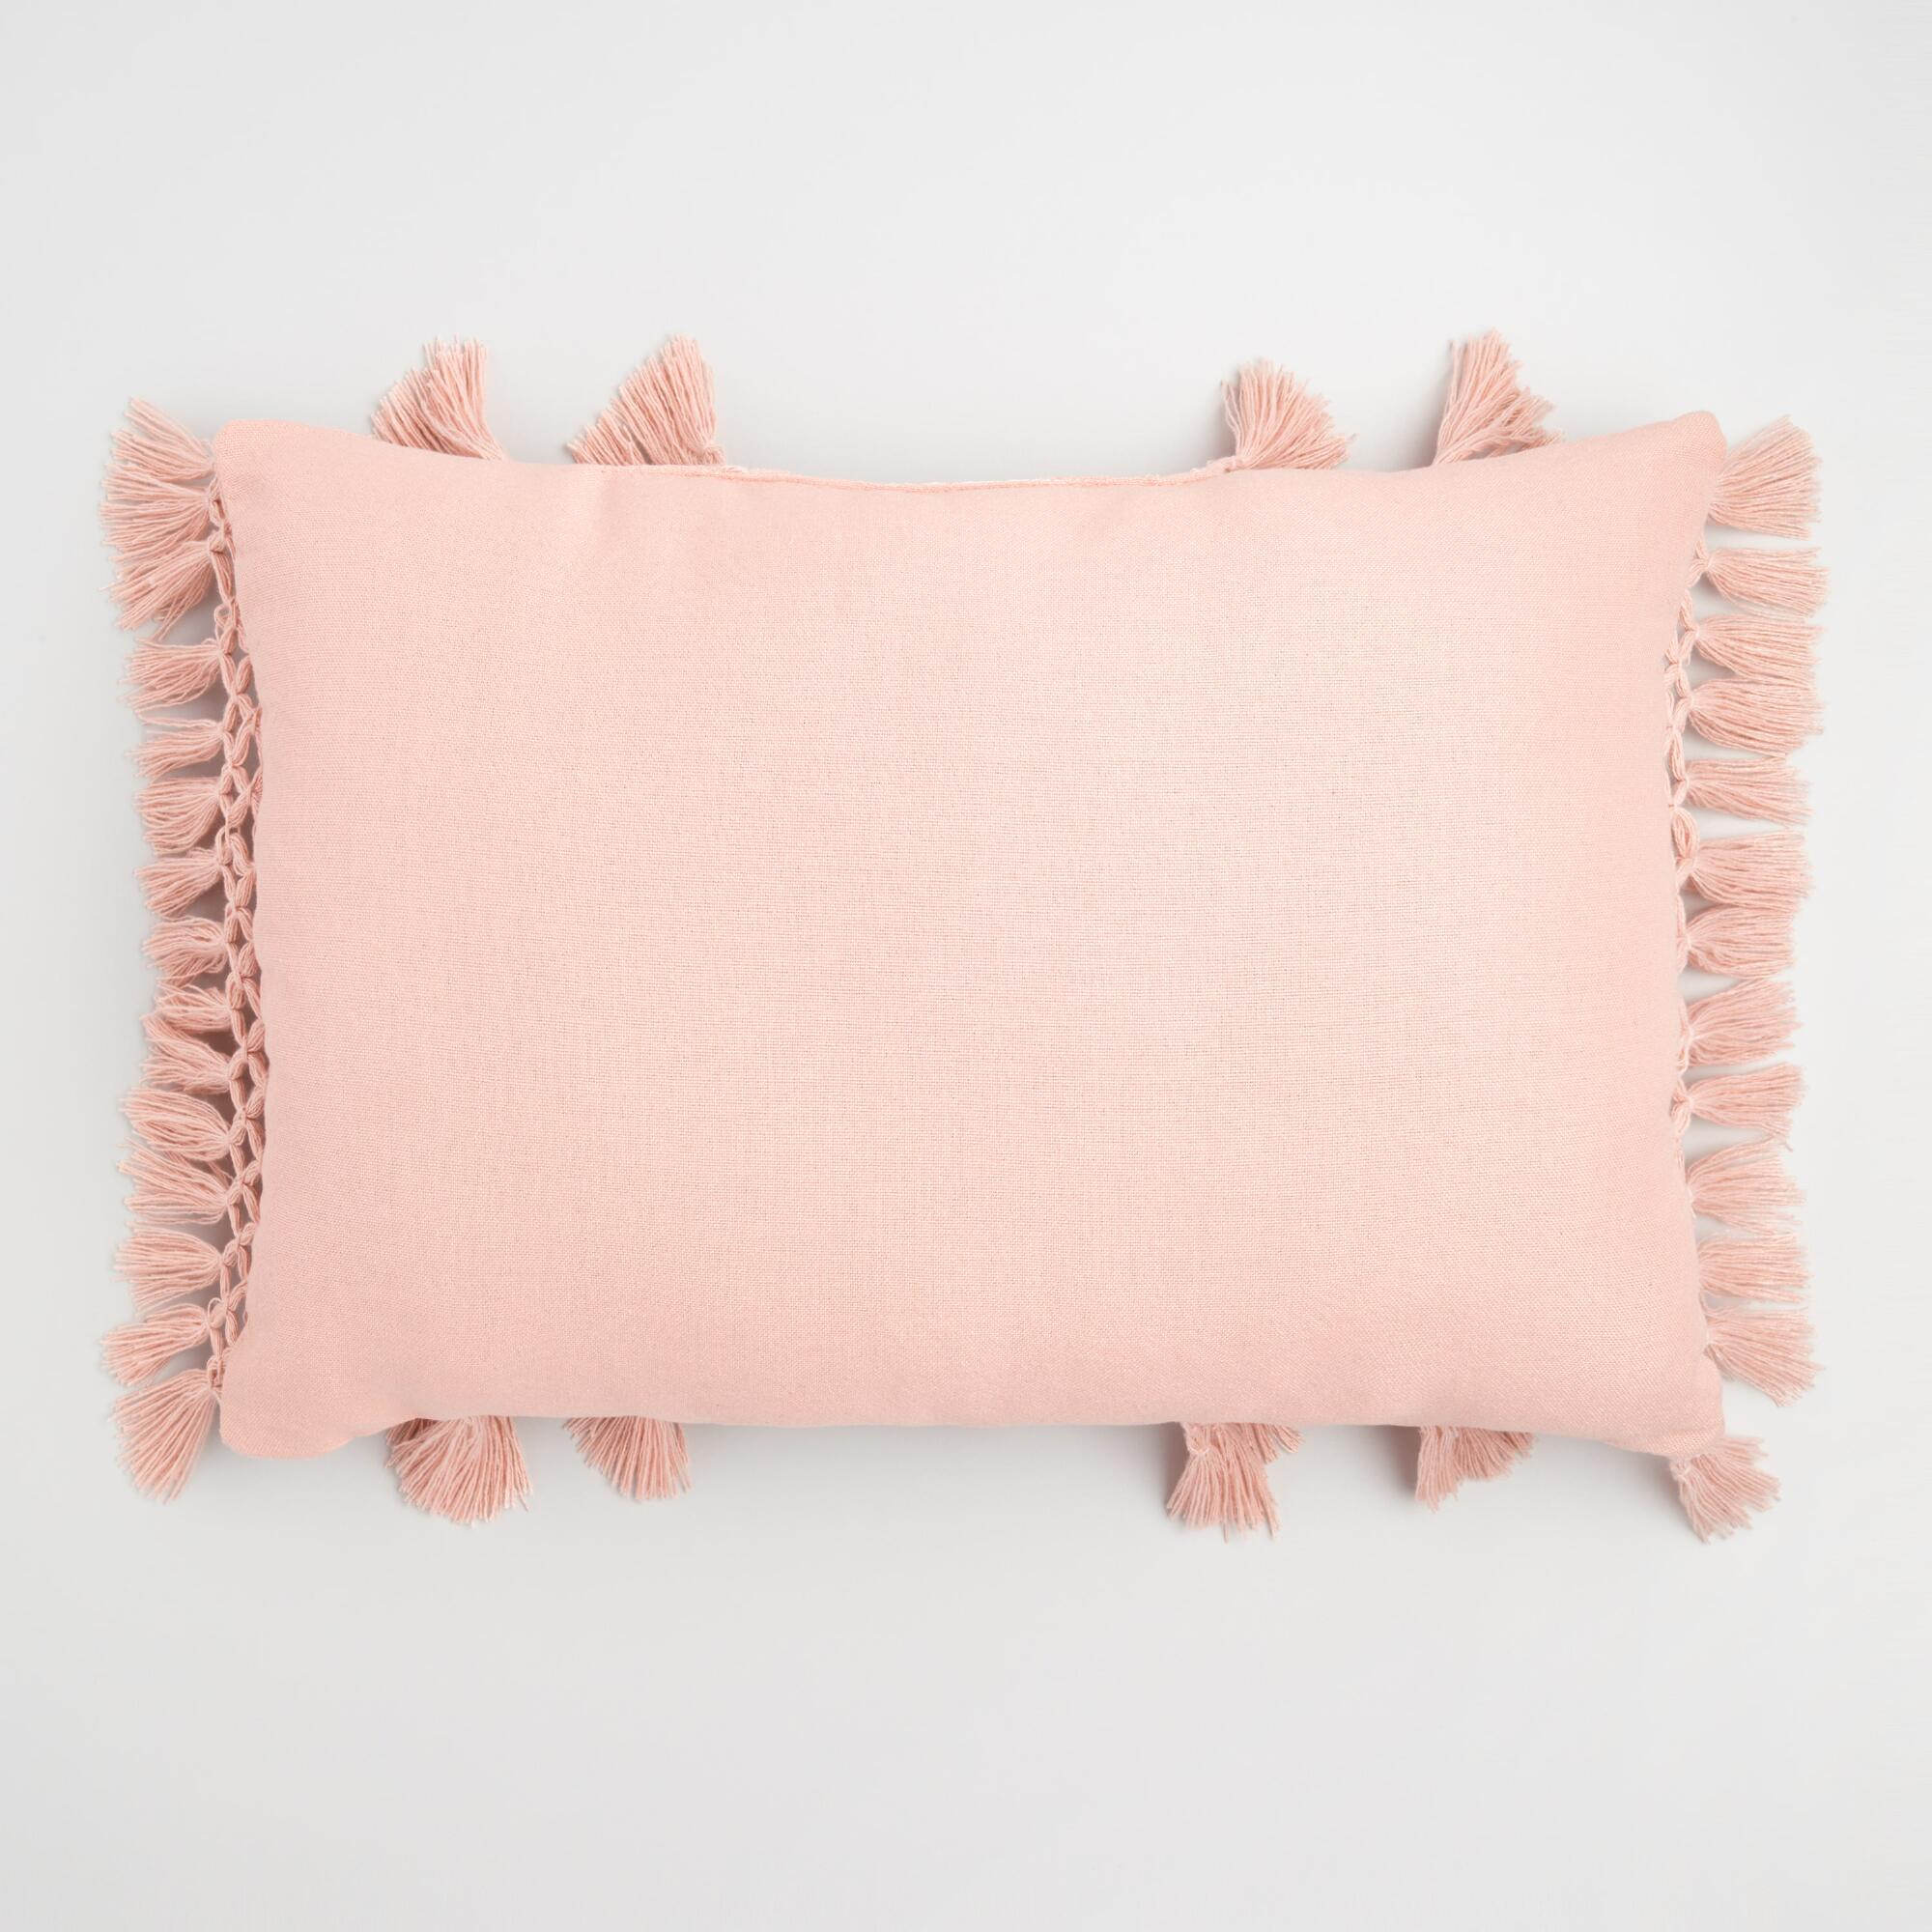 peach combos henderson pillows to size pic good mix look blog decorative how combinations decor guaranteed texture pillow emily color